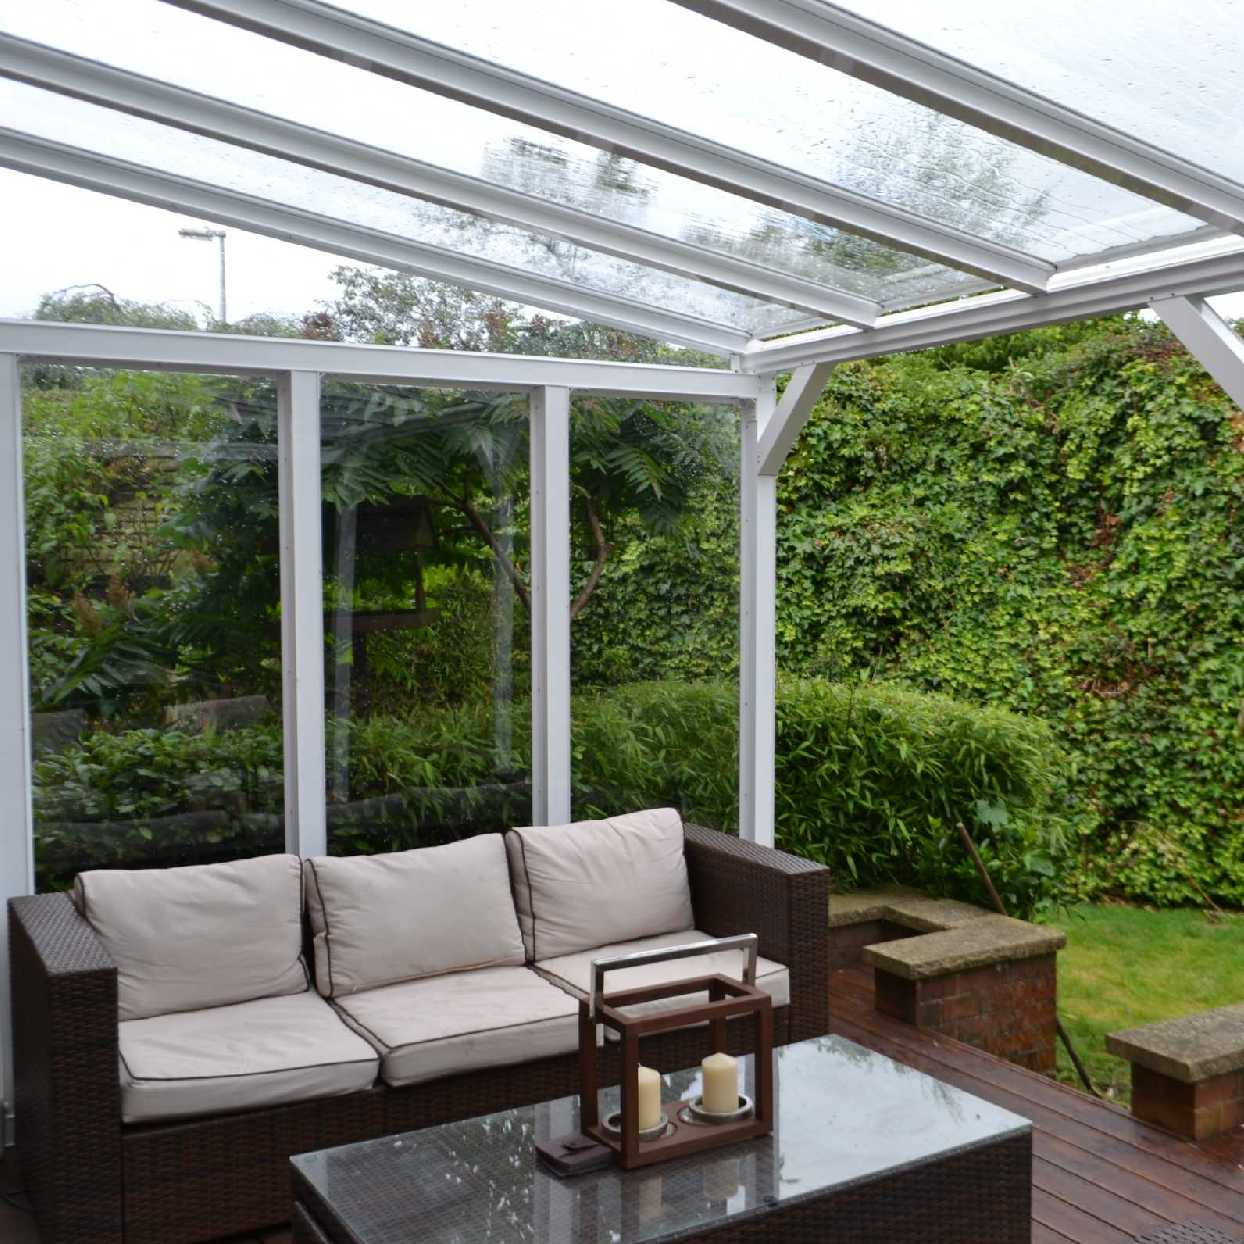 Great selection of Omega Smart White Lean-To Canopy with 16mm Polycarbonate Glazing - 10.2m (W) x 4.5m (P), (5) Supporting Posts